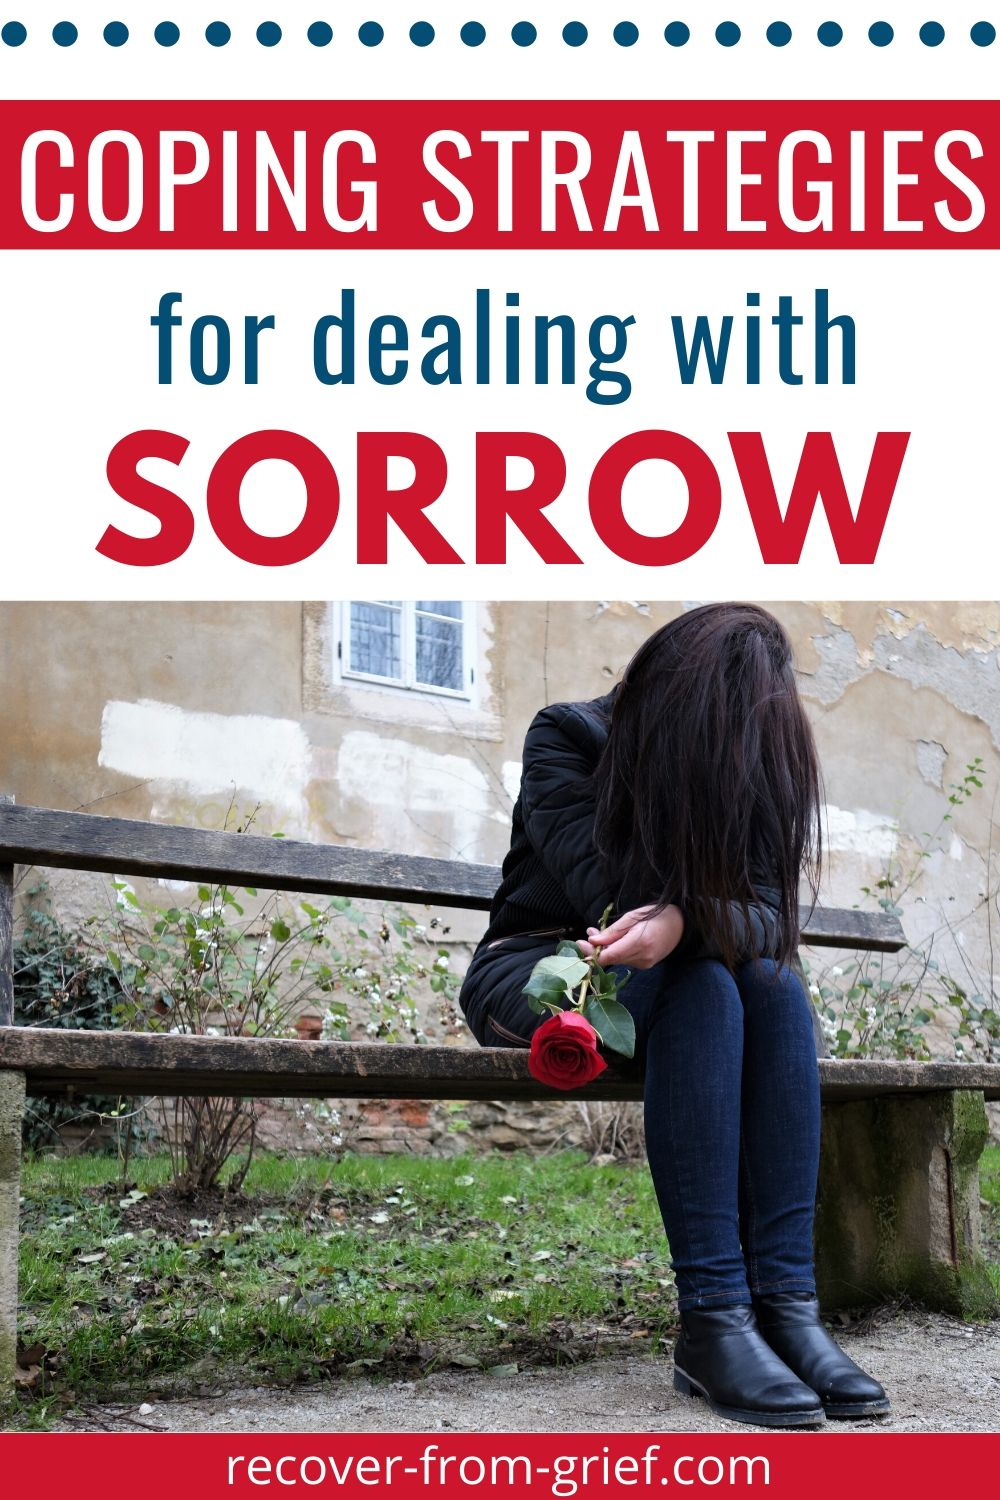 Coping strategies for dealing with sorrow #grieving #sorrow #copingmechanism #copingstrategies #bereavement